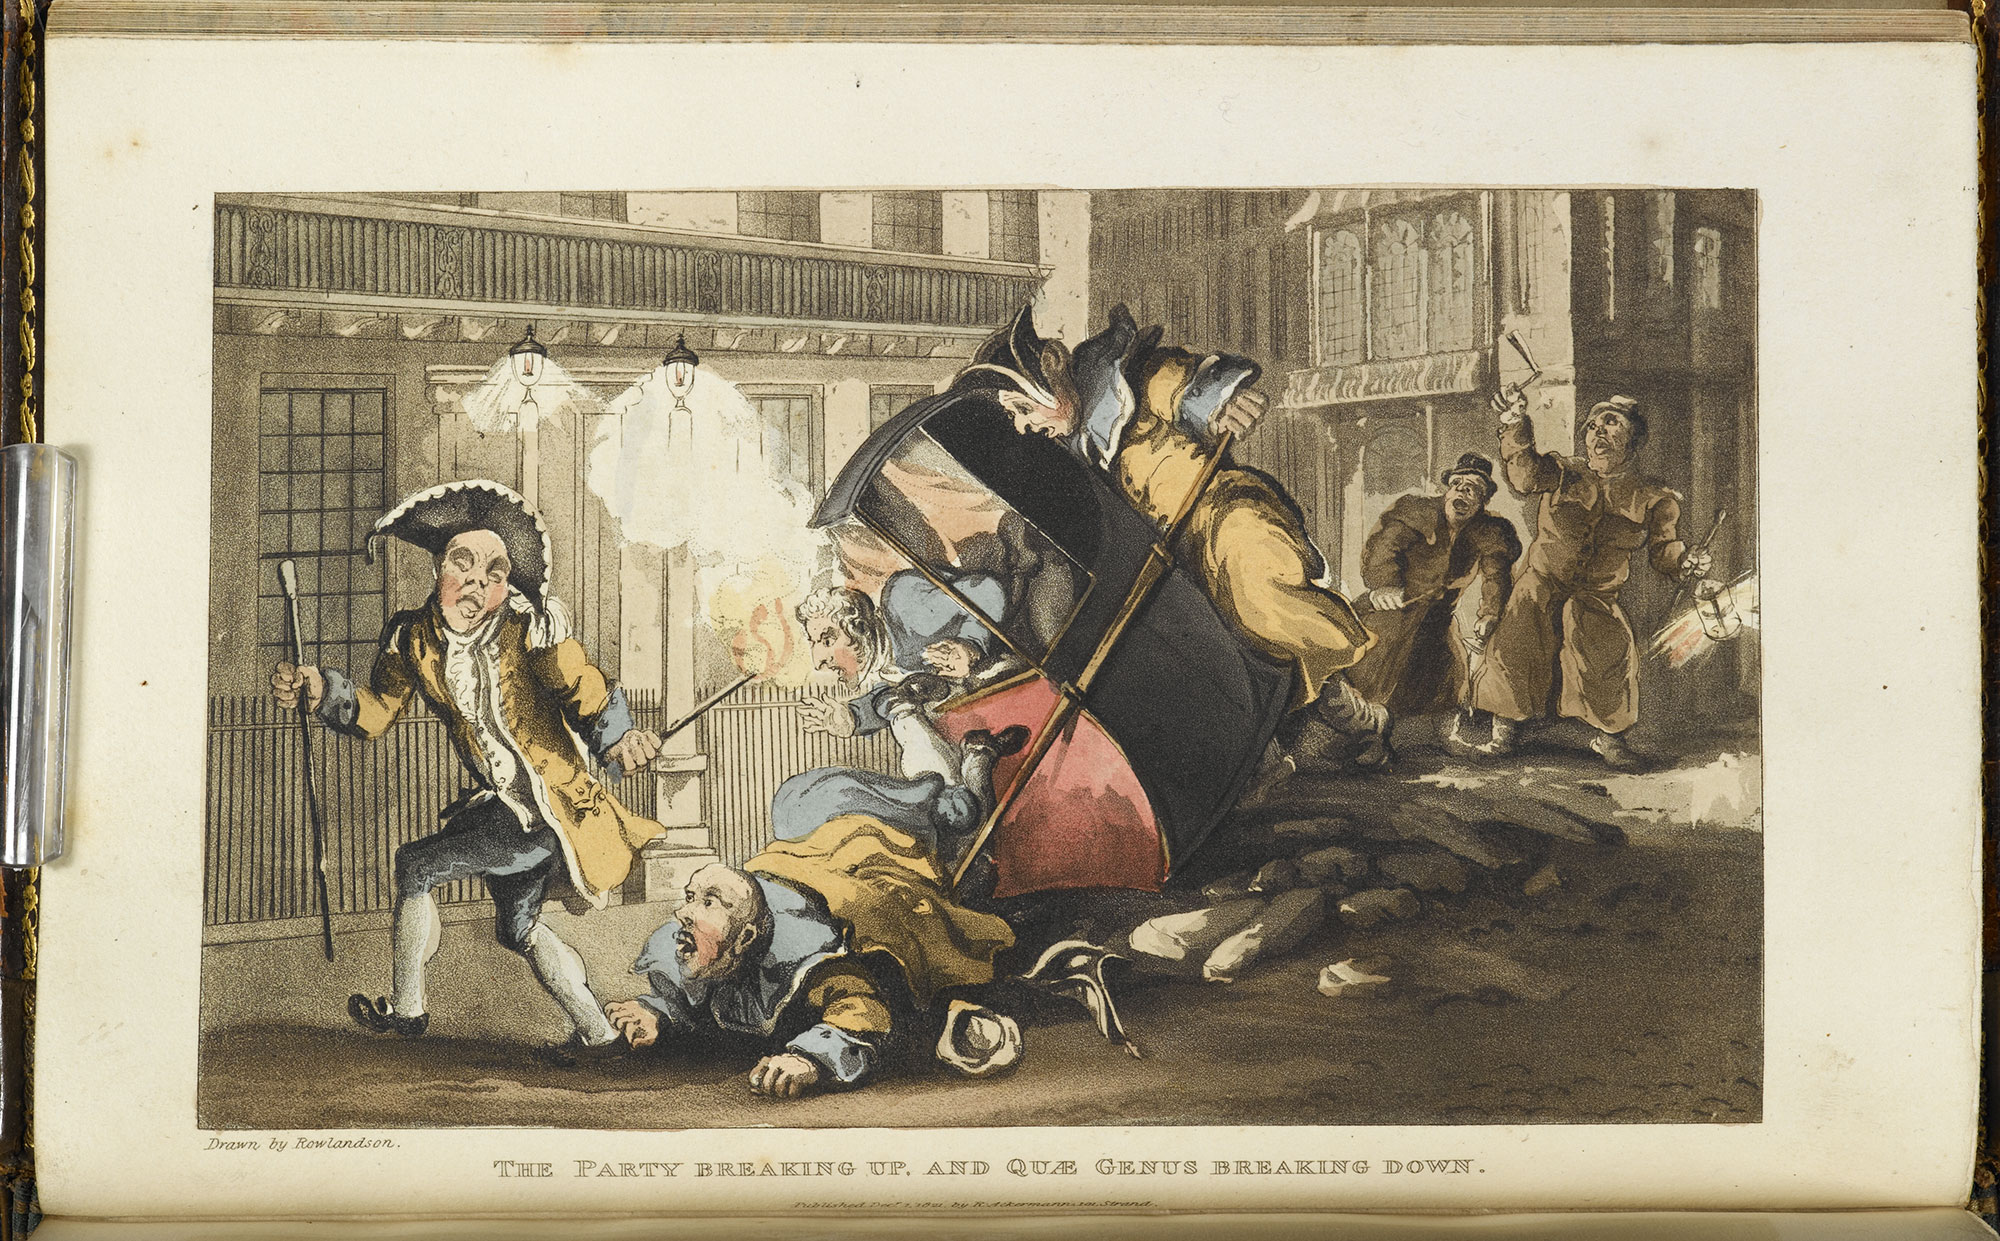 'The party breaking up' by Thomas Rowlandson, a depiction of a traffic accident